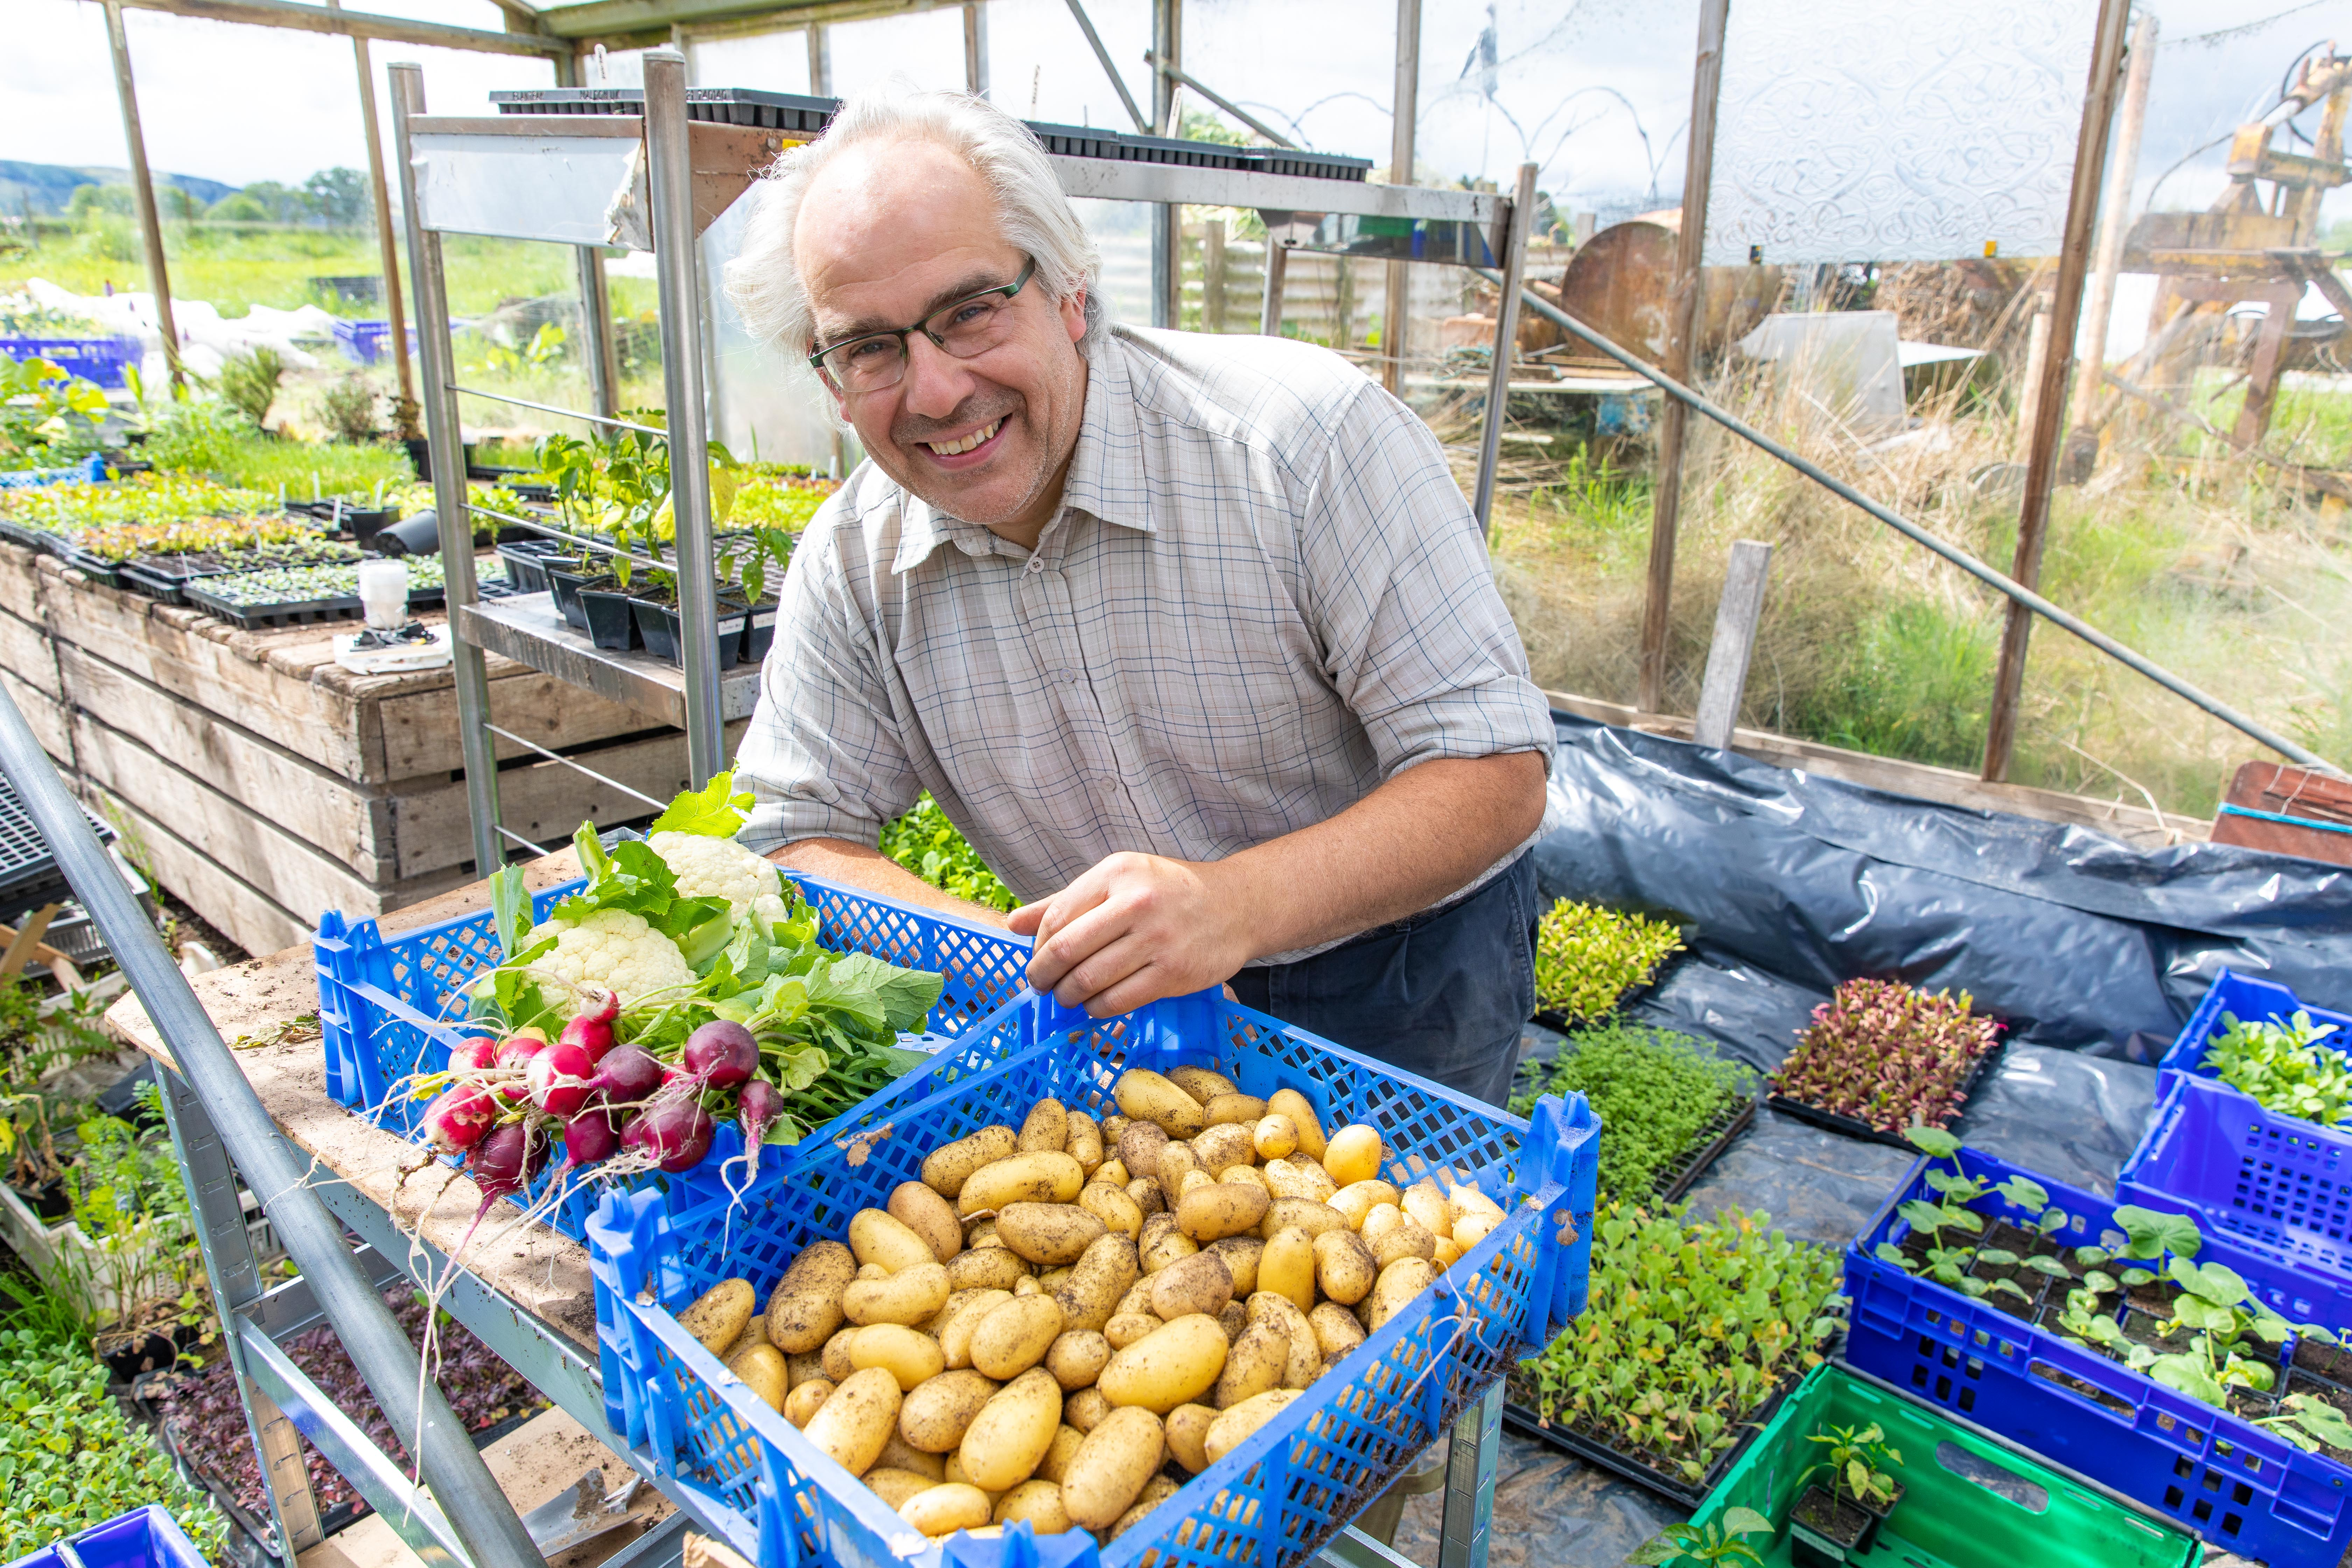 John Hepburn-Wright with some of his produce.